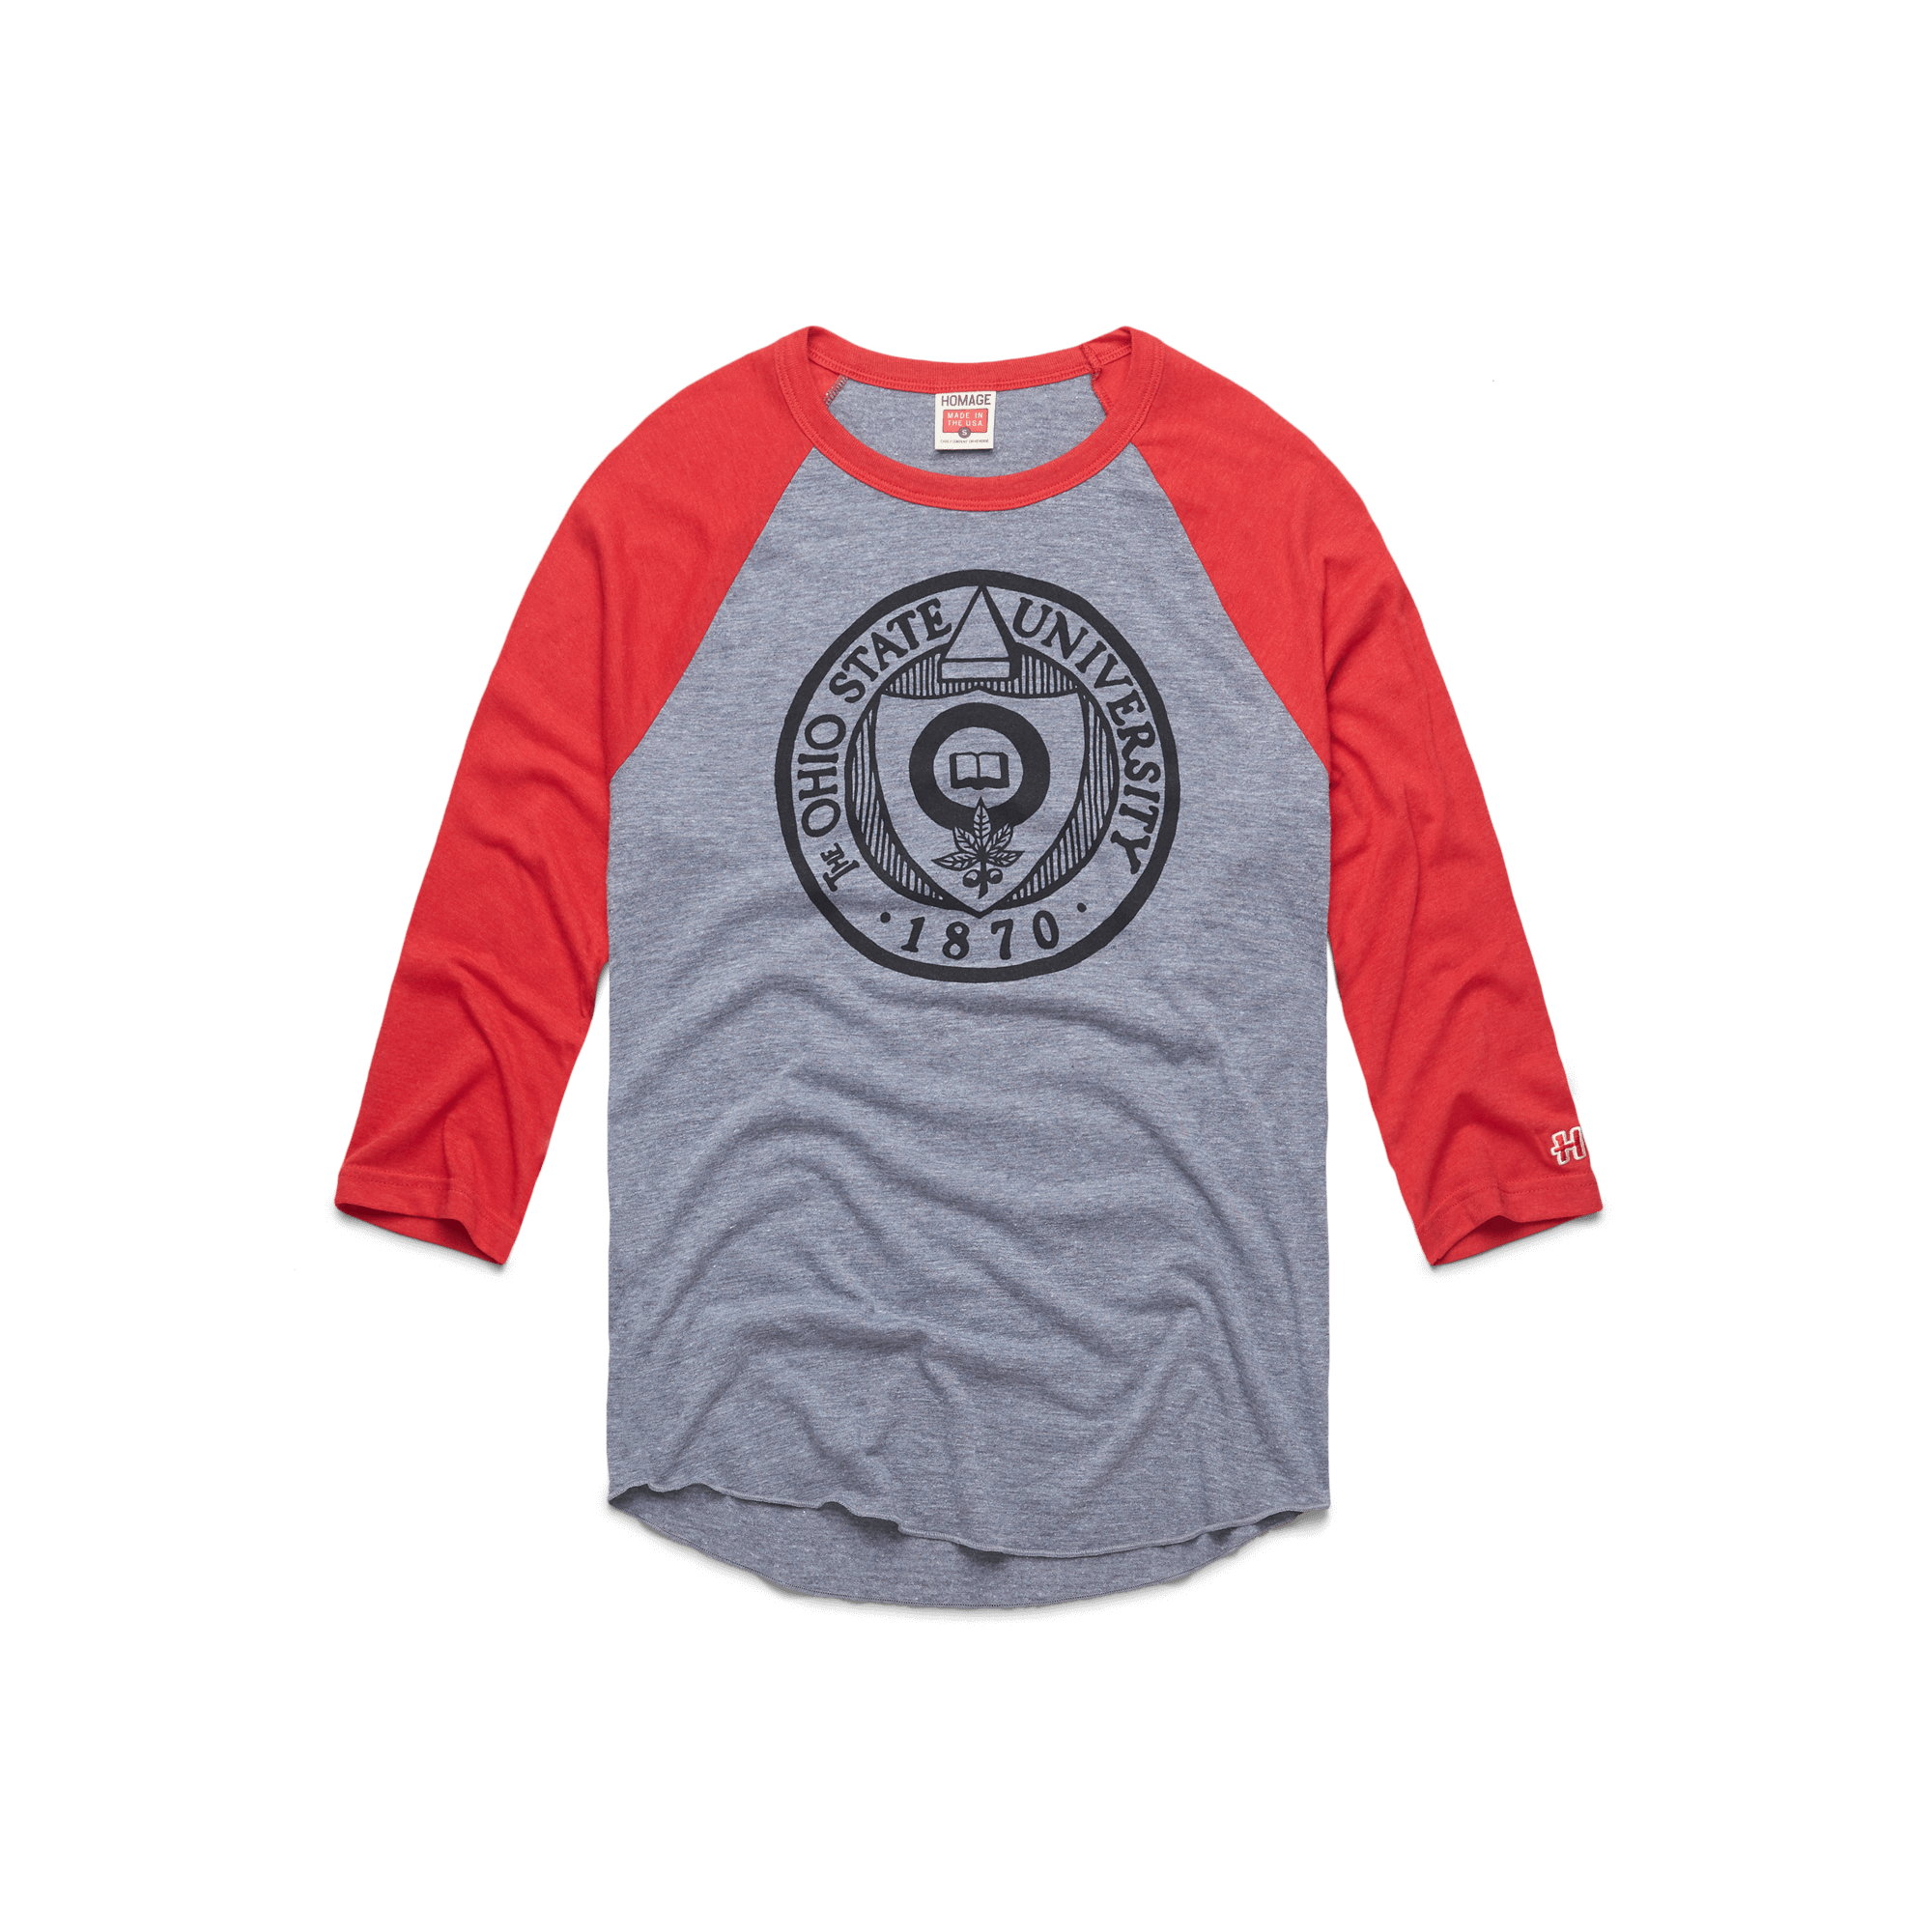 7bc4a231 Retro Ohio State University OSU Buckeyes Vintage Inspired Apparel – HOMAGE